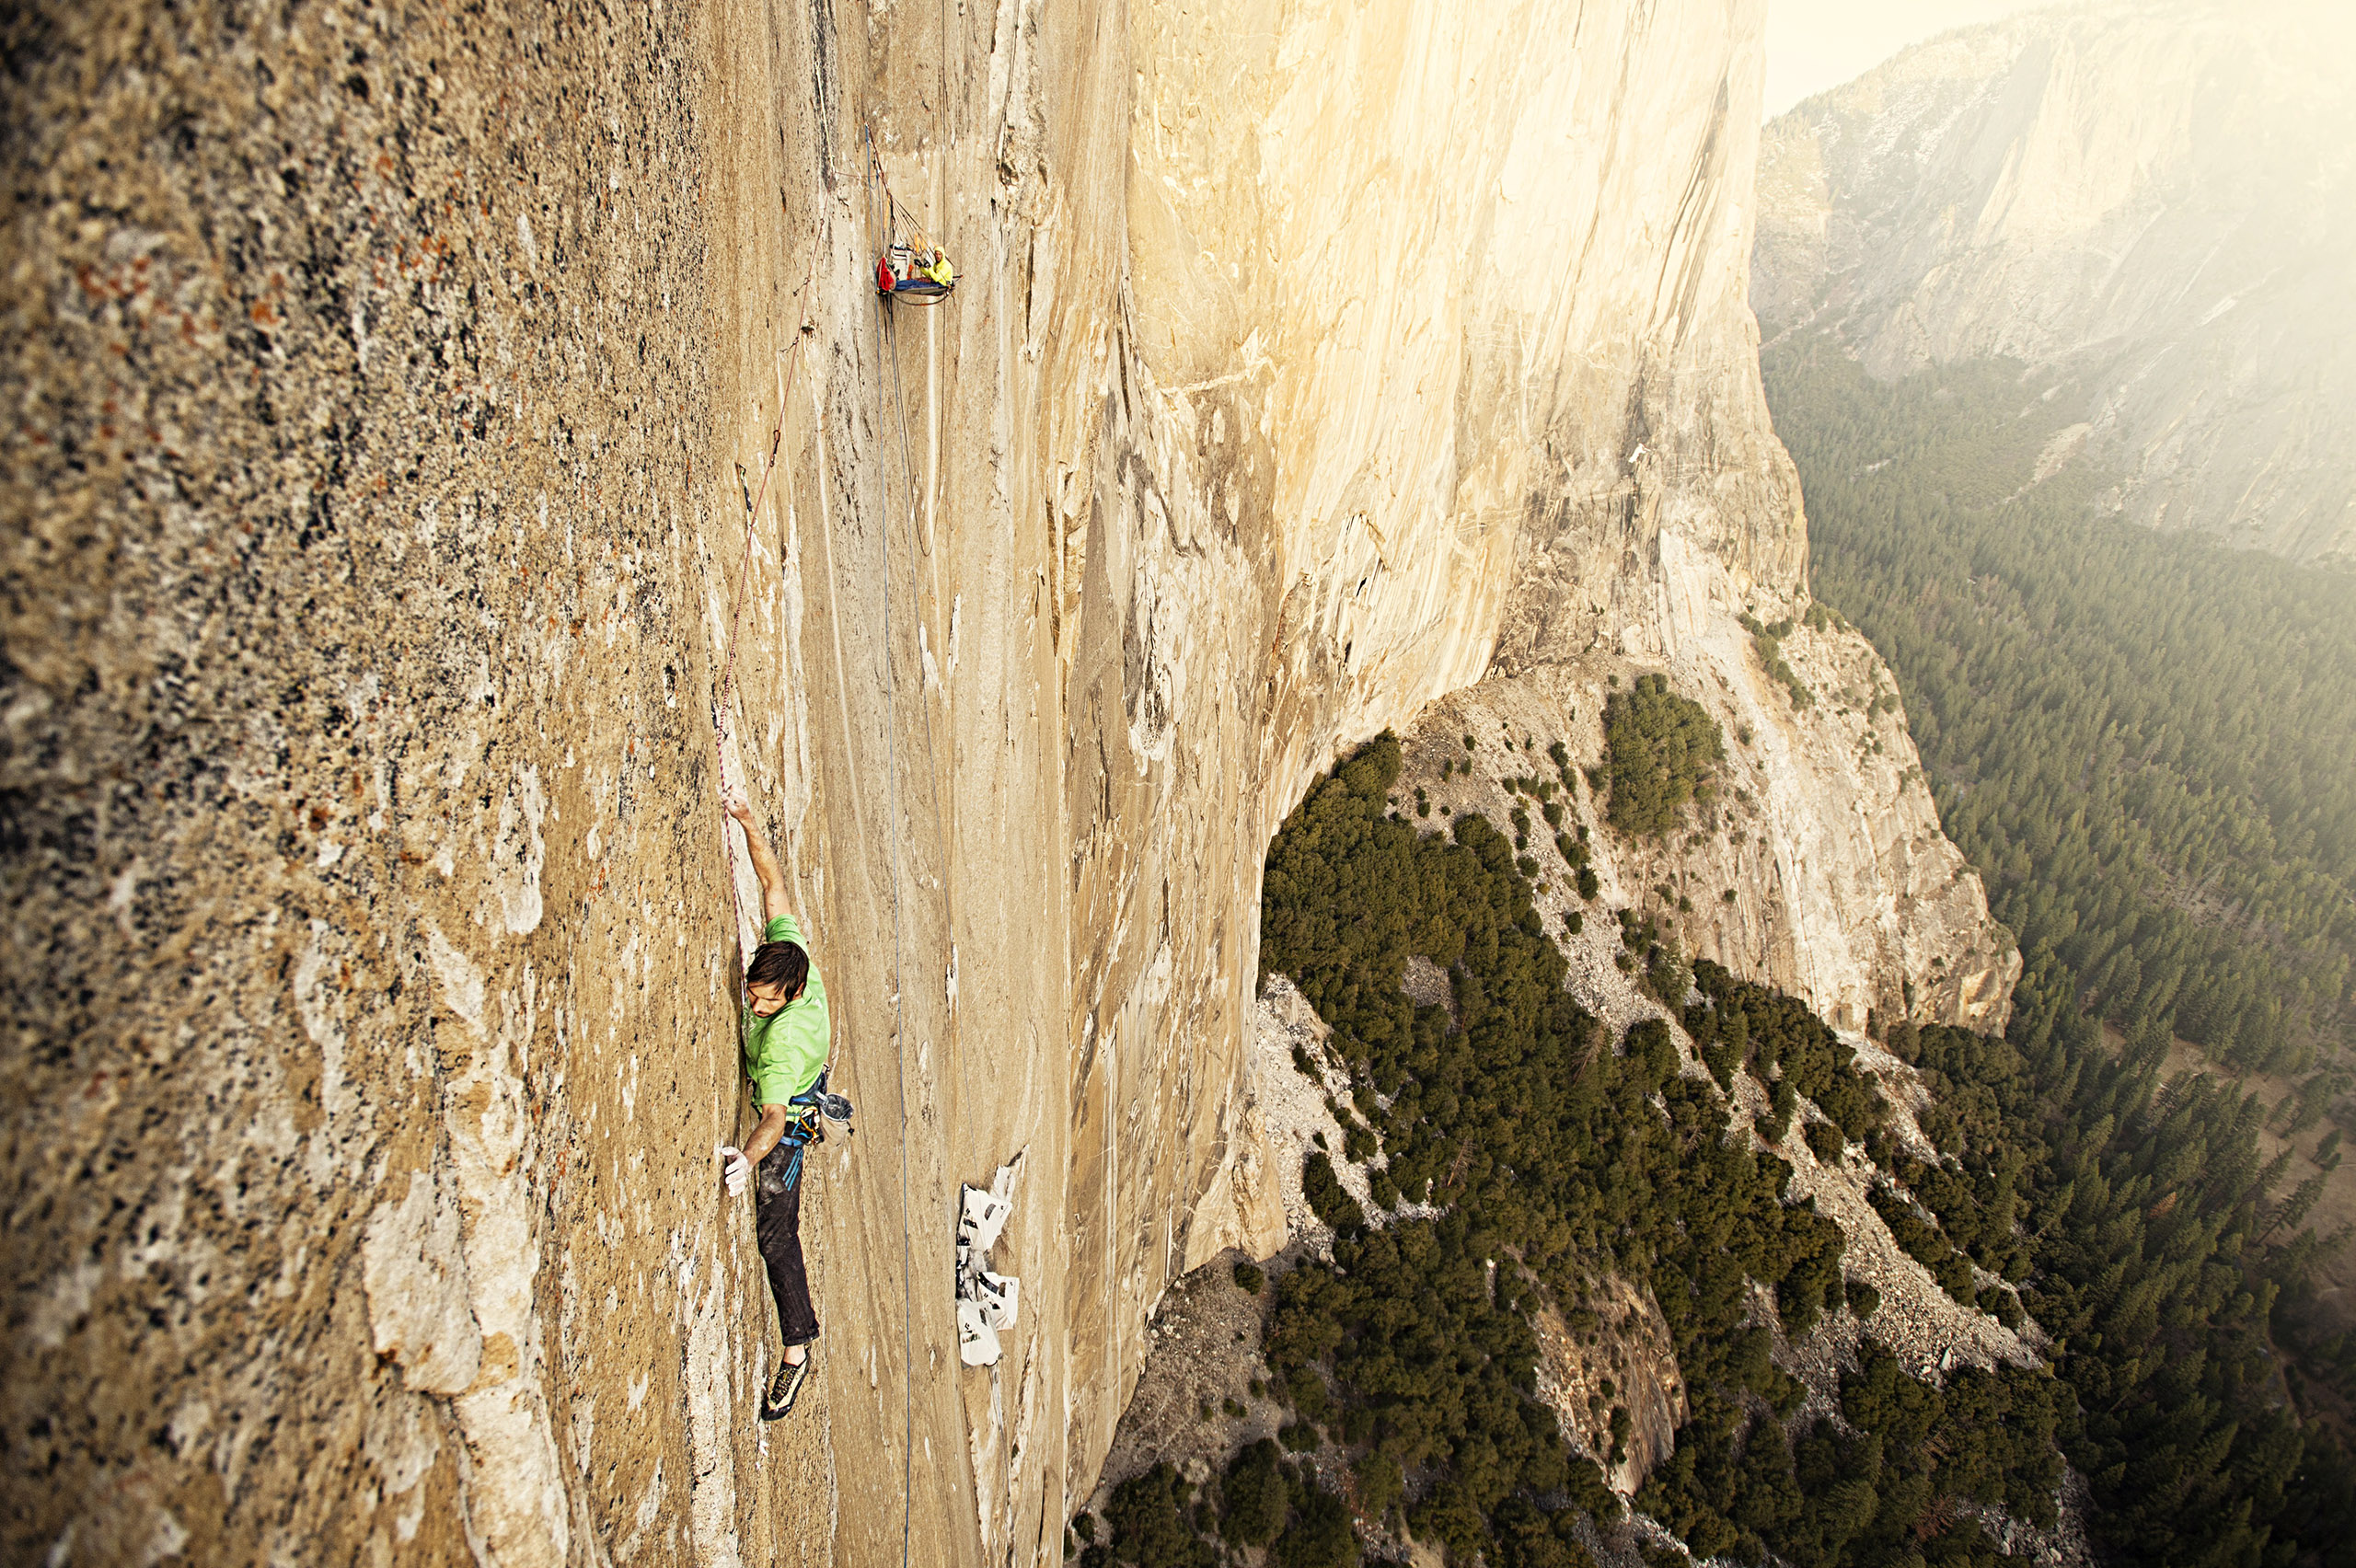 Kevin Jorgeson attempts to scale the Dawn Wall on the southeast side of El Capitan, a rock formation in Yosemite National Park in California